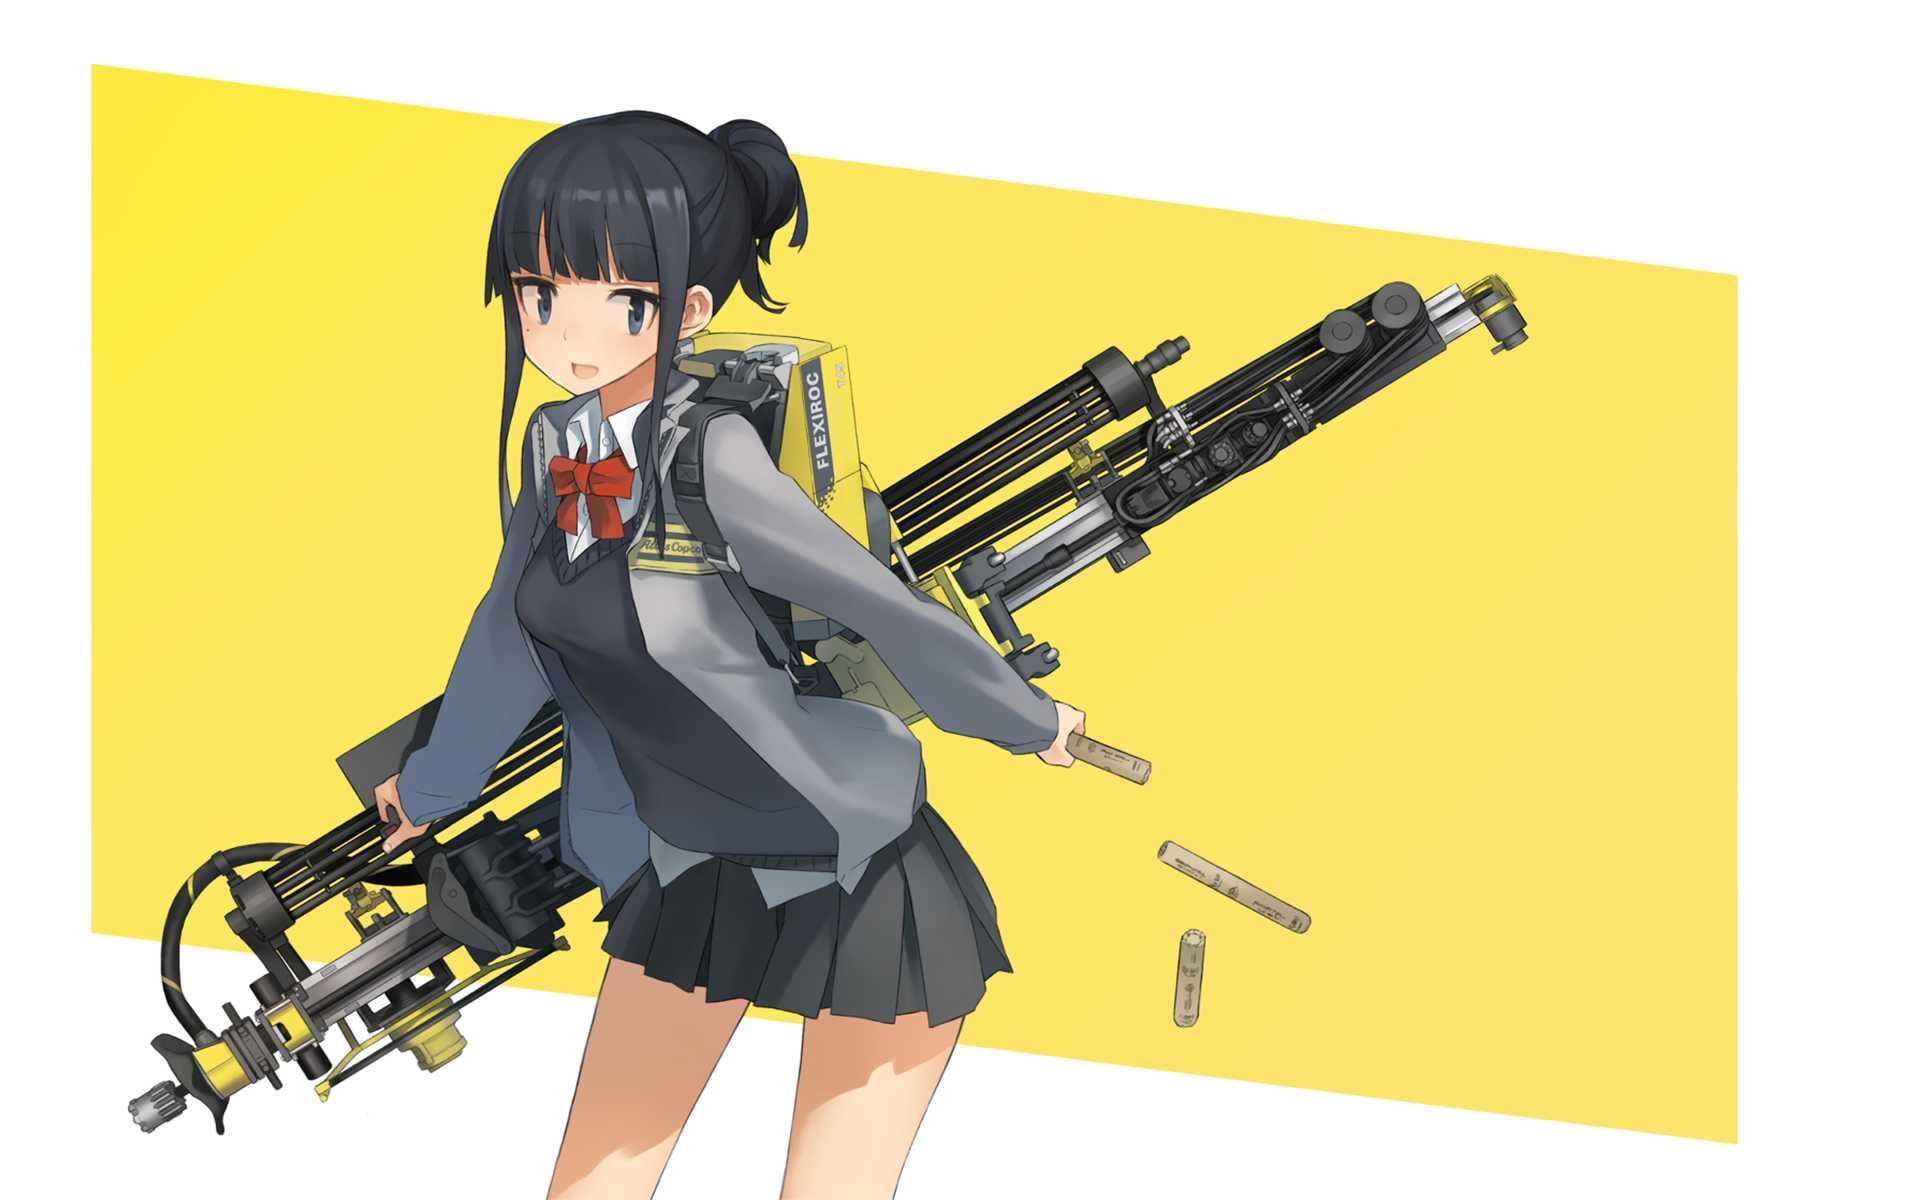 Solo, Gun, Black Hair